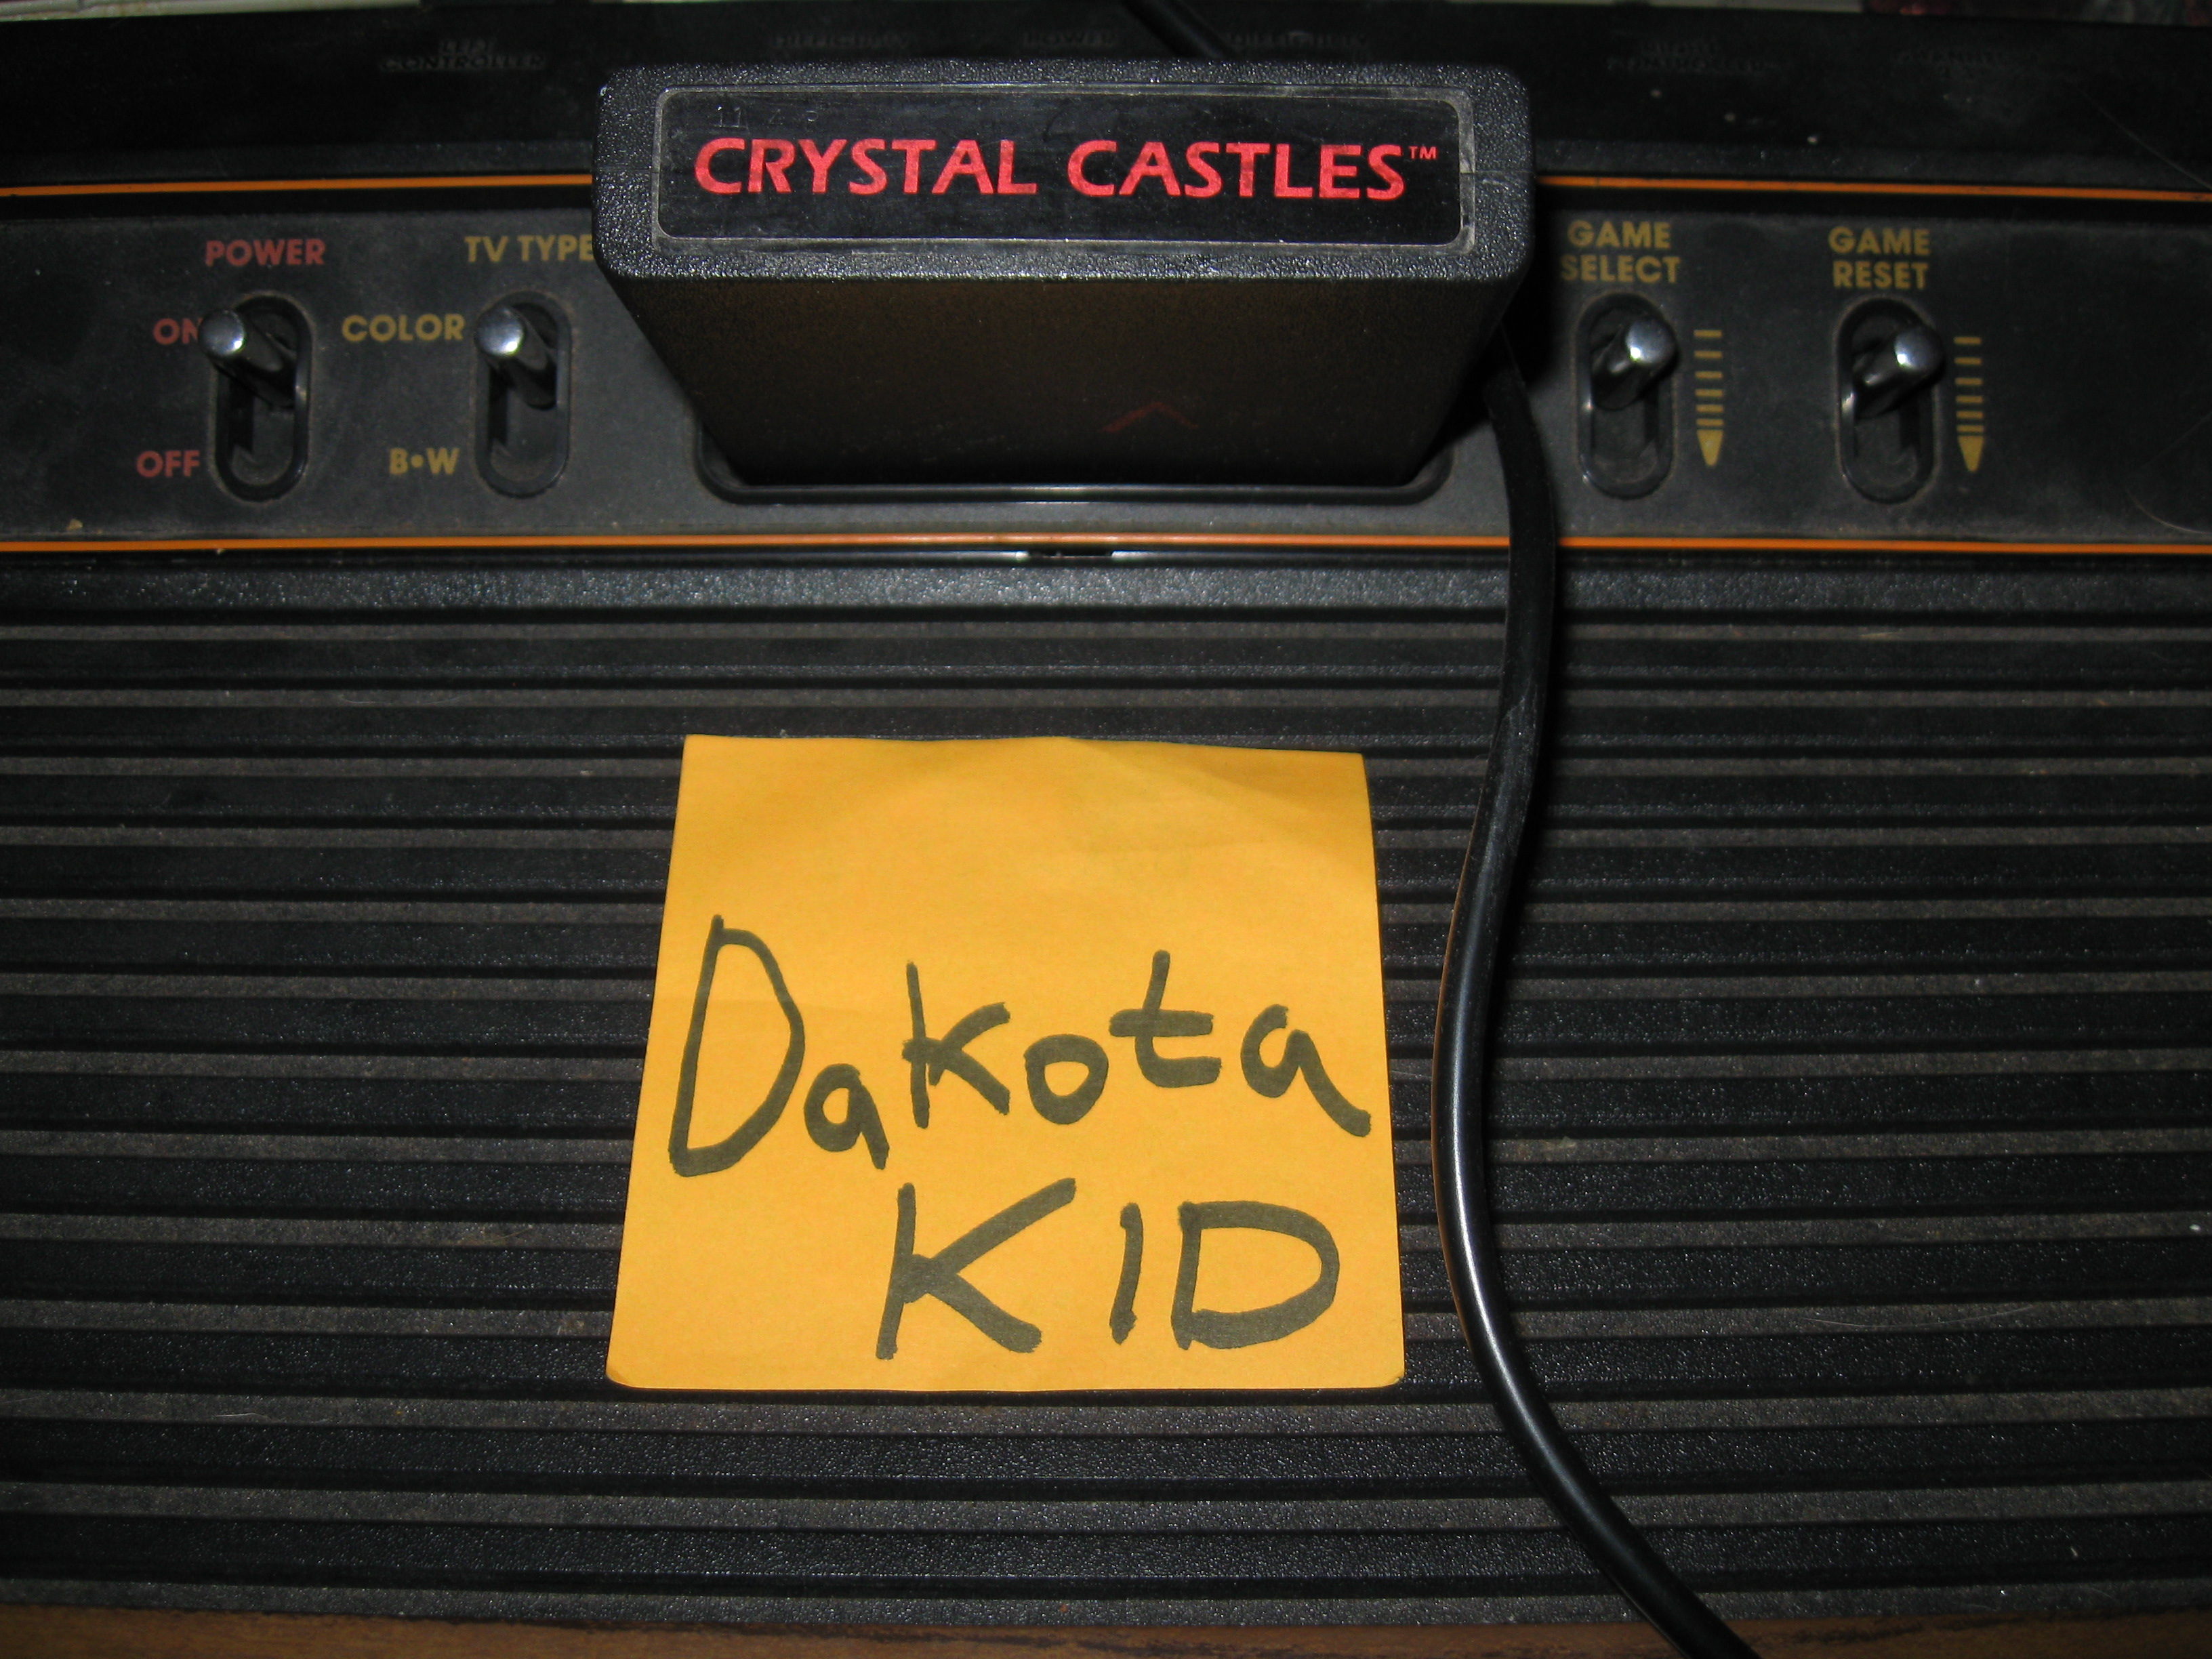 DakotaKid: Crystal Castles (Atari 2600 Novice/B) 148,734 points on 2016-02-21 11:23:42